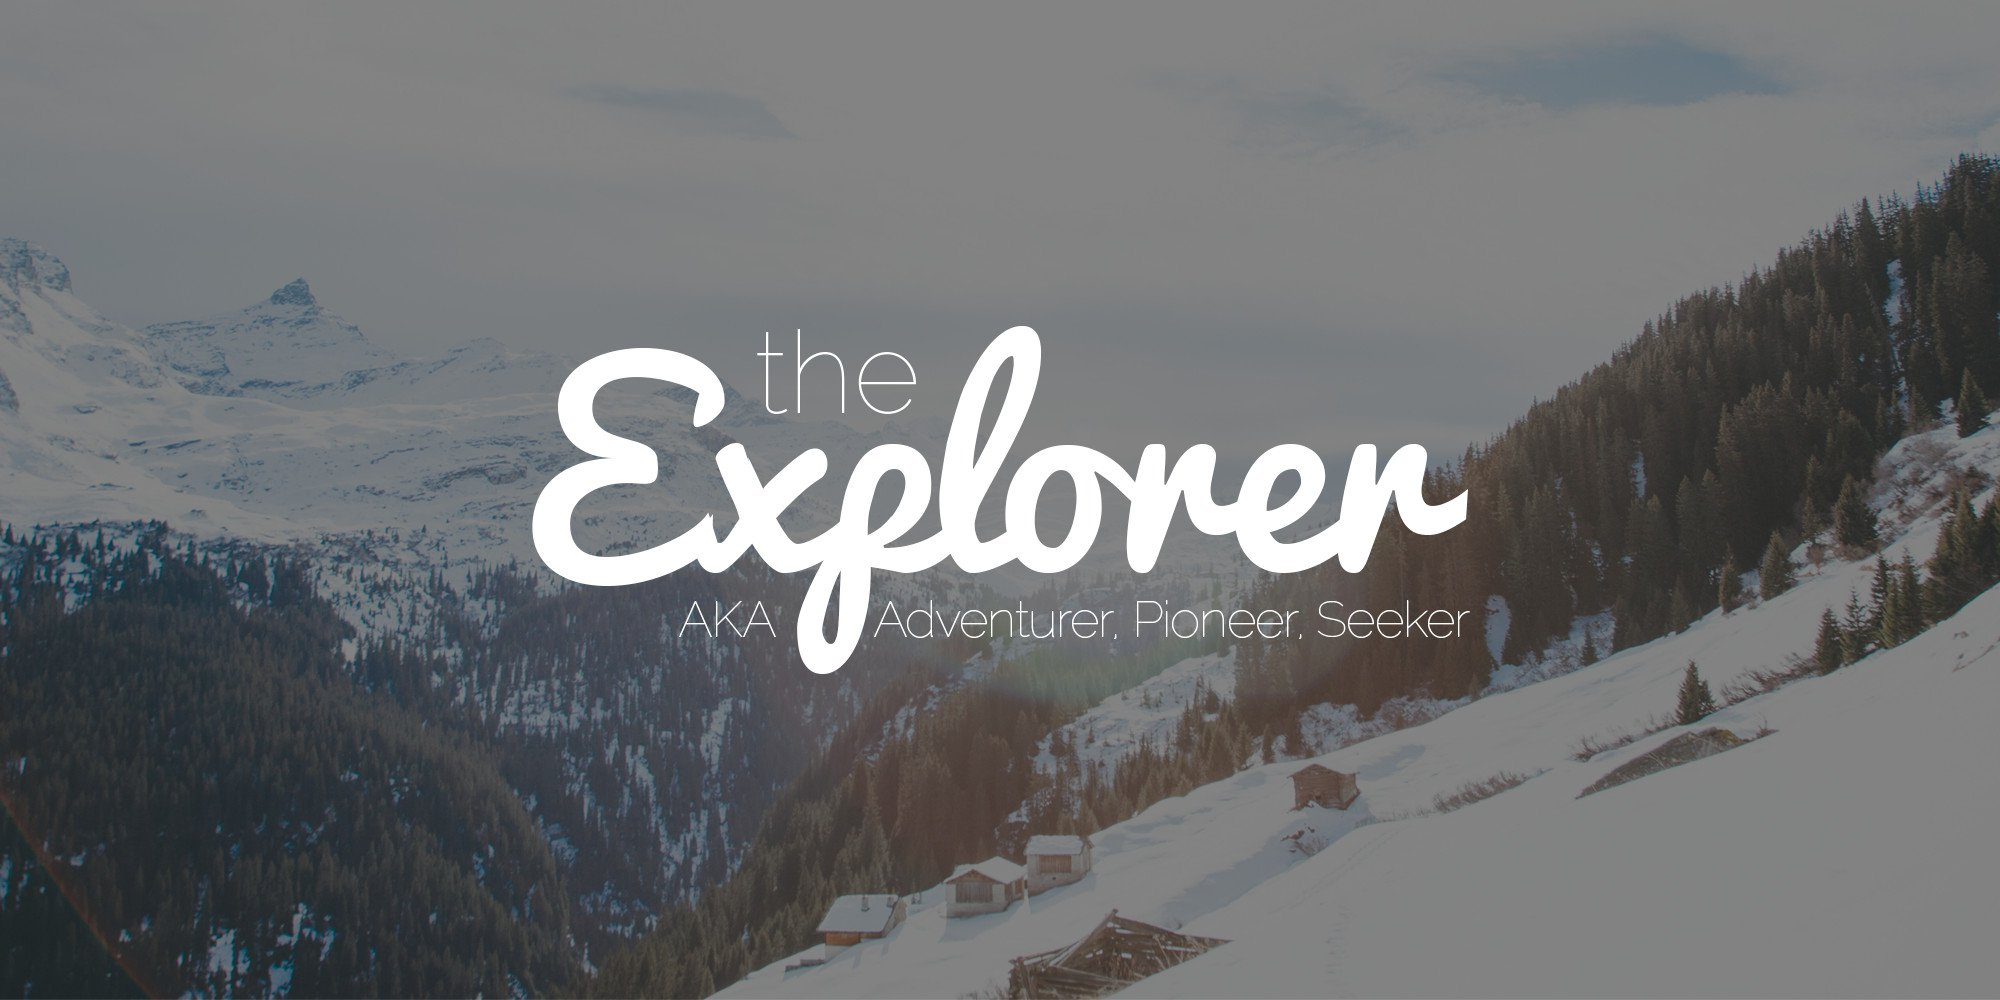 Explorer Brandfluency Course